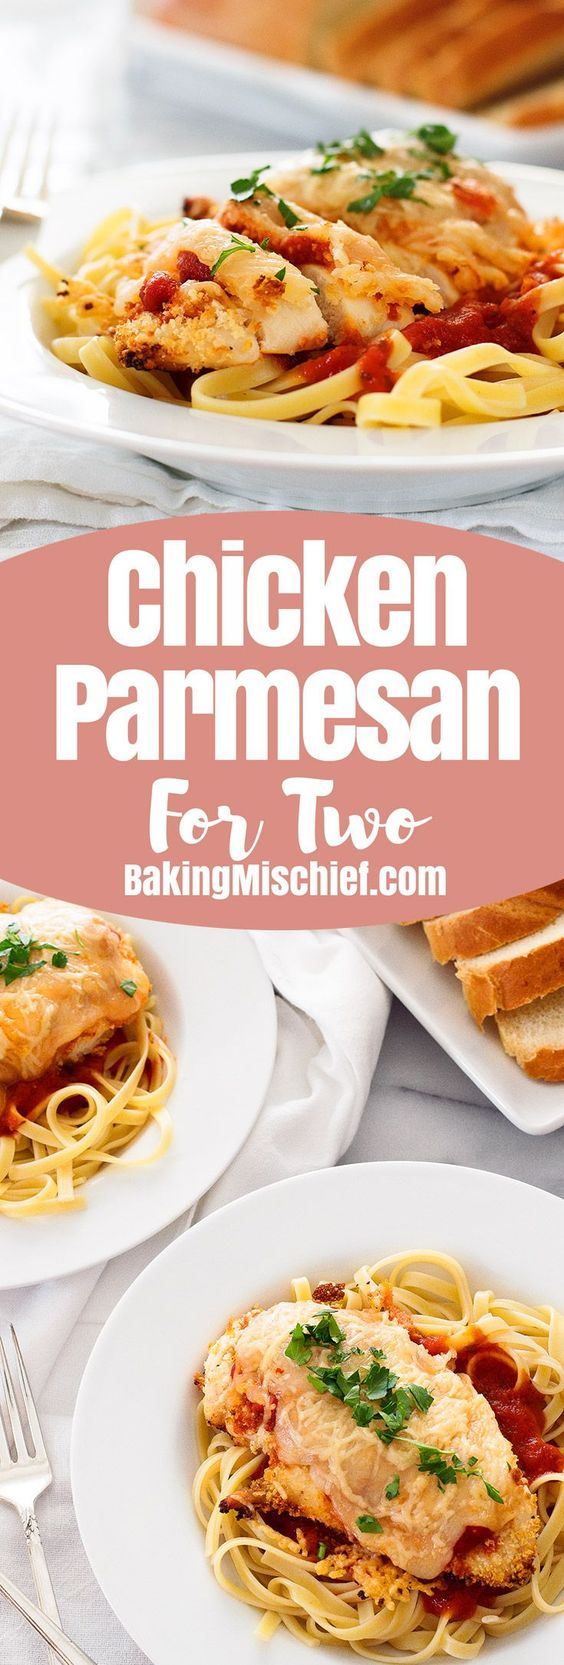 Quick and easy baked Chicken Parmesan for Two Recipe via Baking Mischief can be on your table in under half an hour and is a fantastic, filling weeknight meal when you have a craving for pasta.